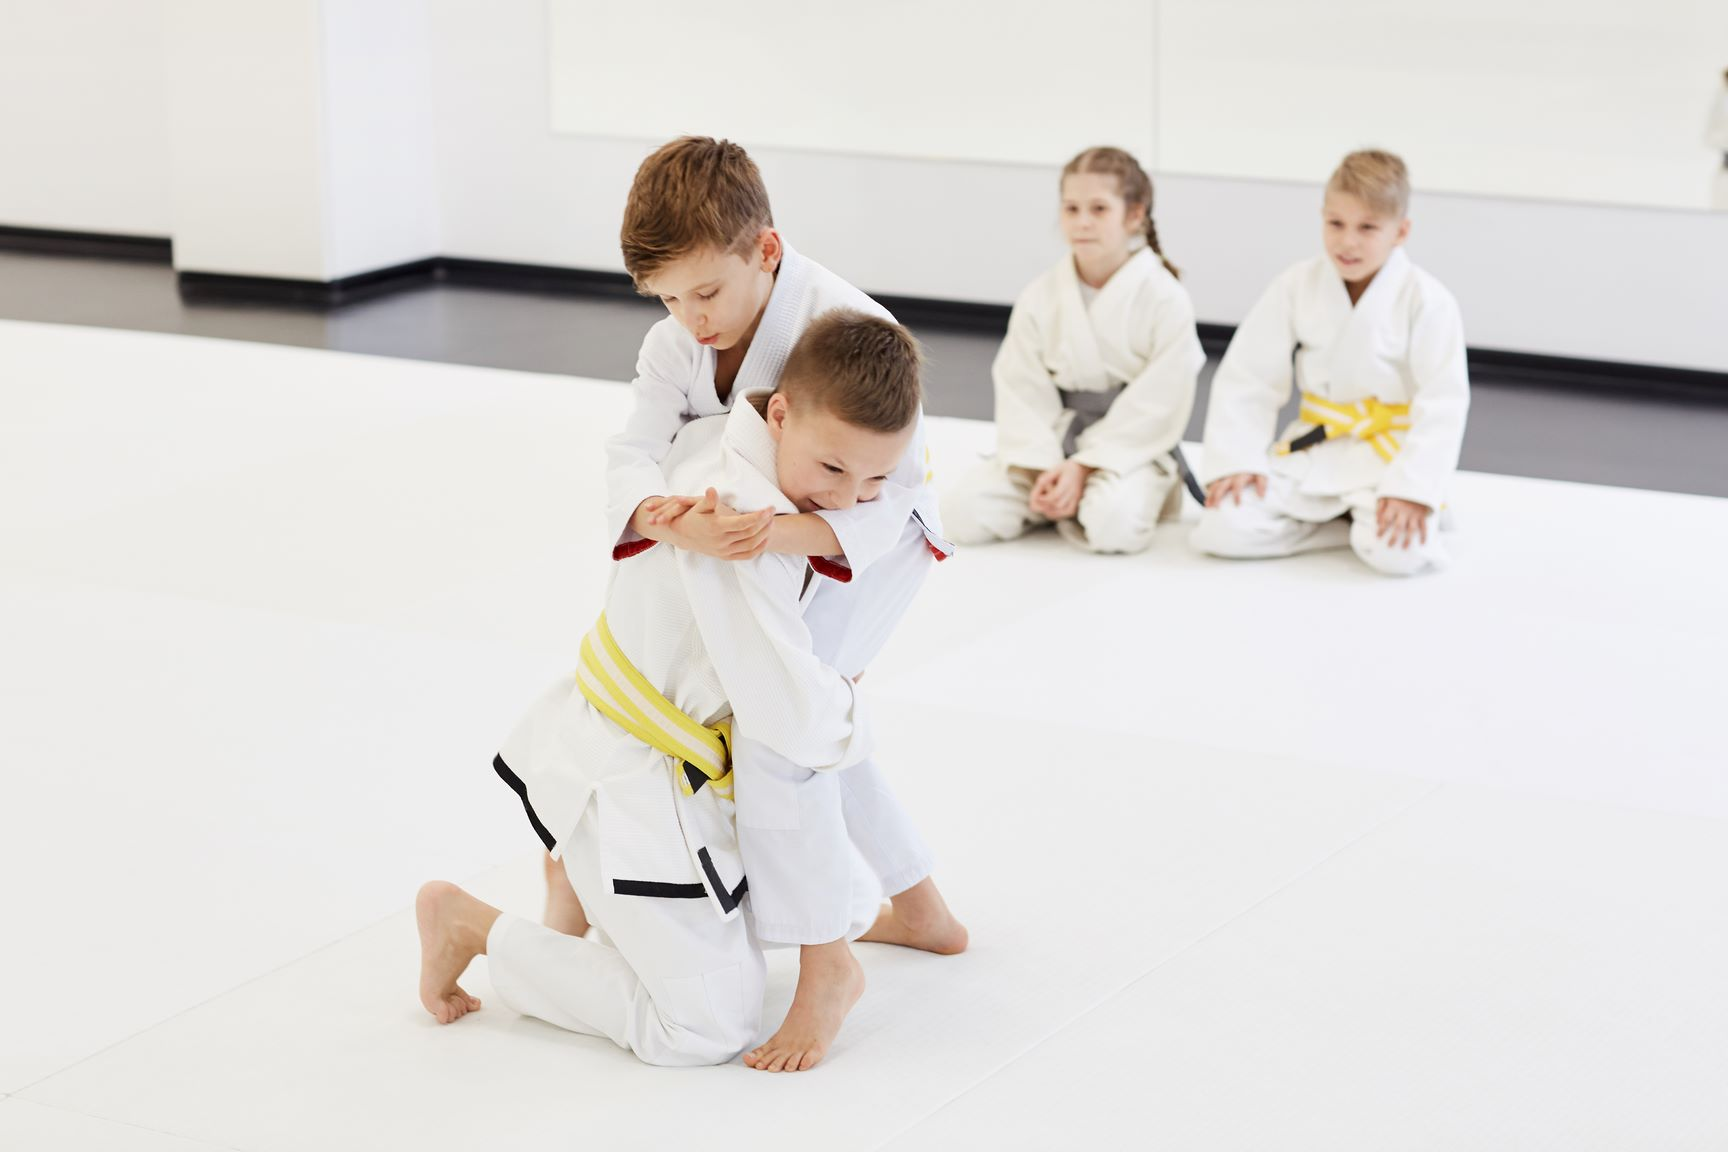 Two boys fighting while other children sitting on the floor and looking at them during competition in karate